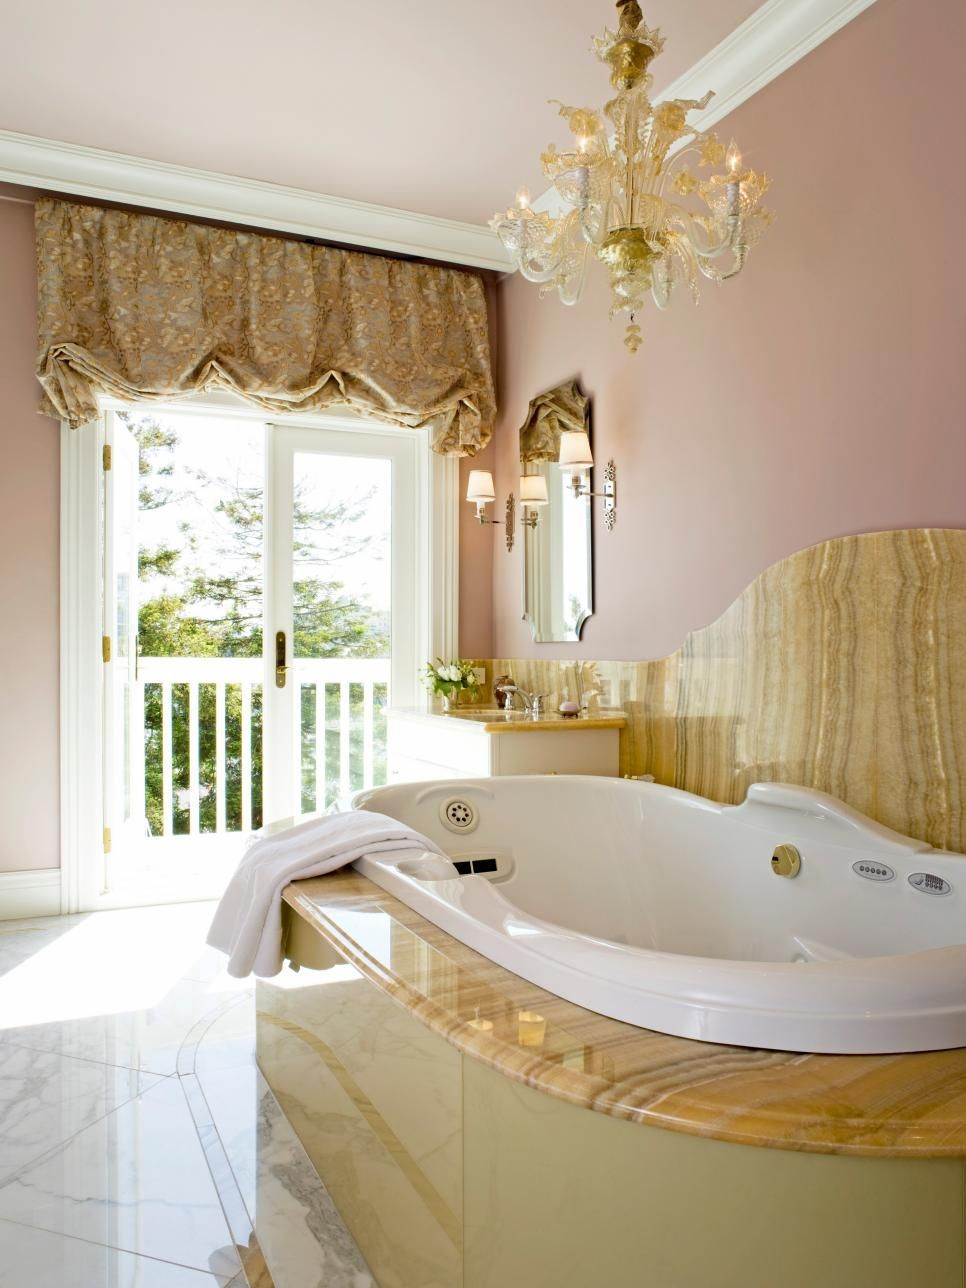 Jacuzzi in master bedroom  This master bathroom is a luxurious retreat contrasting classic tile